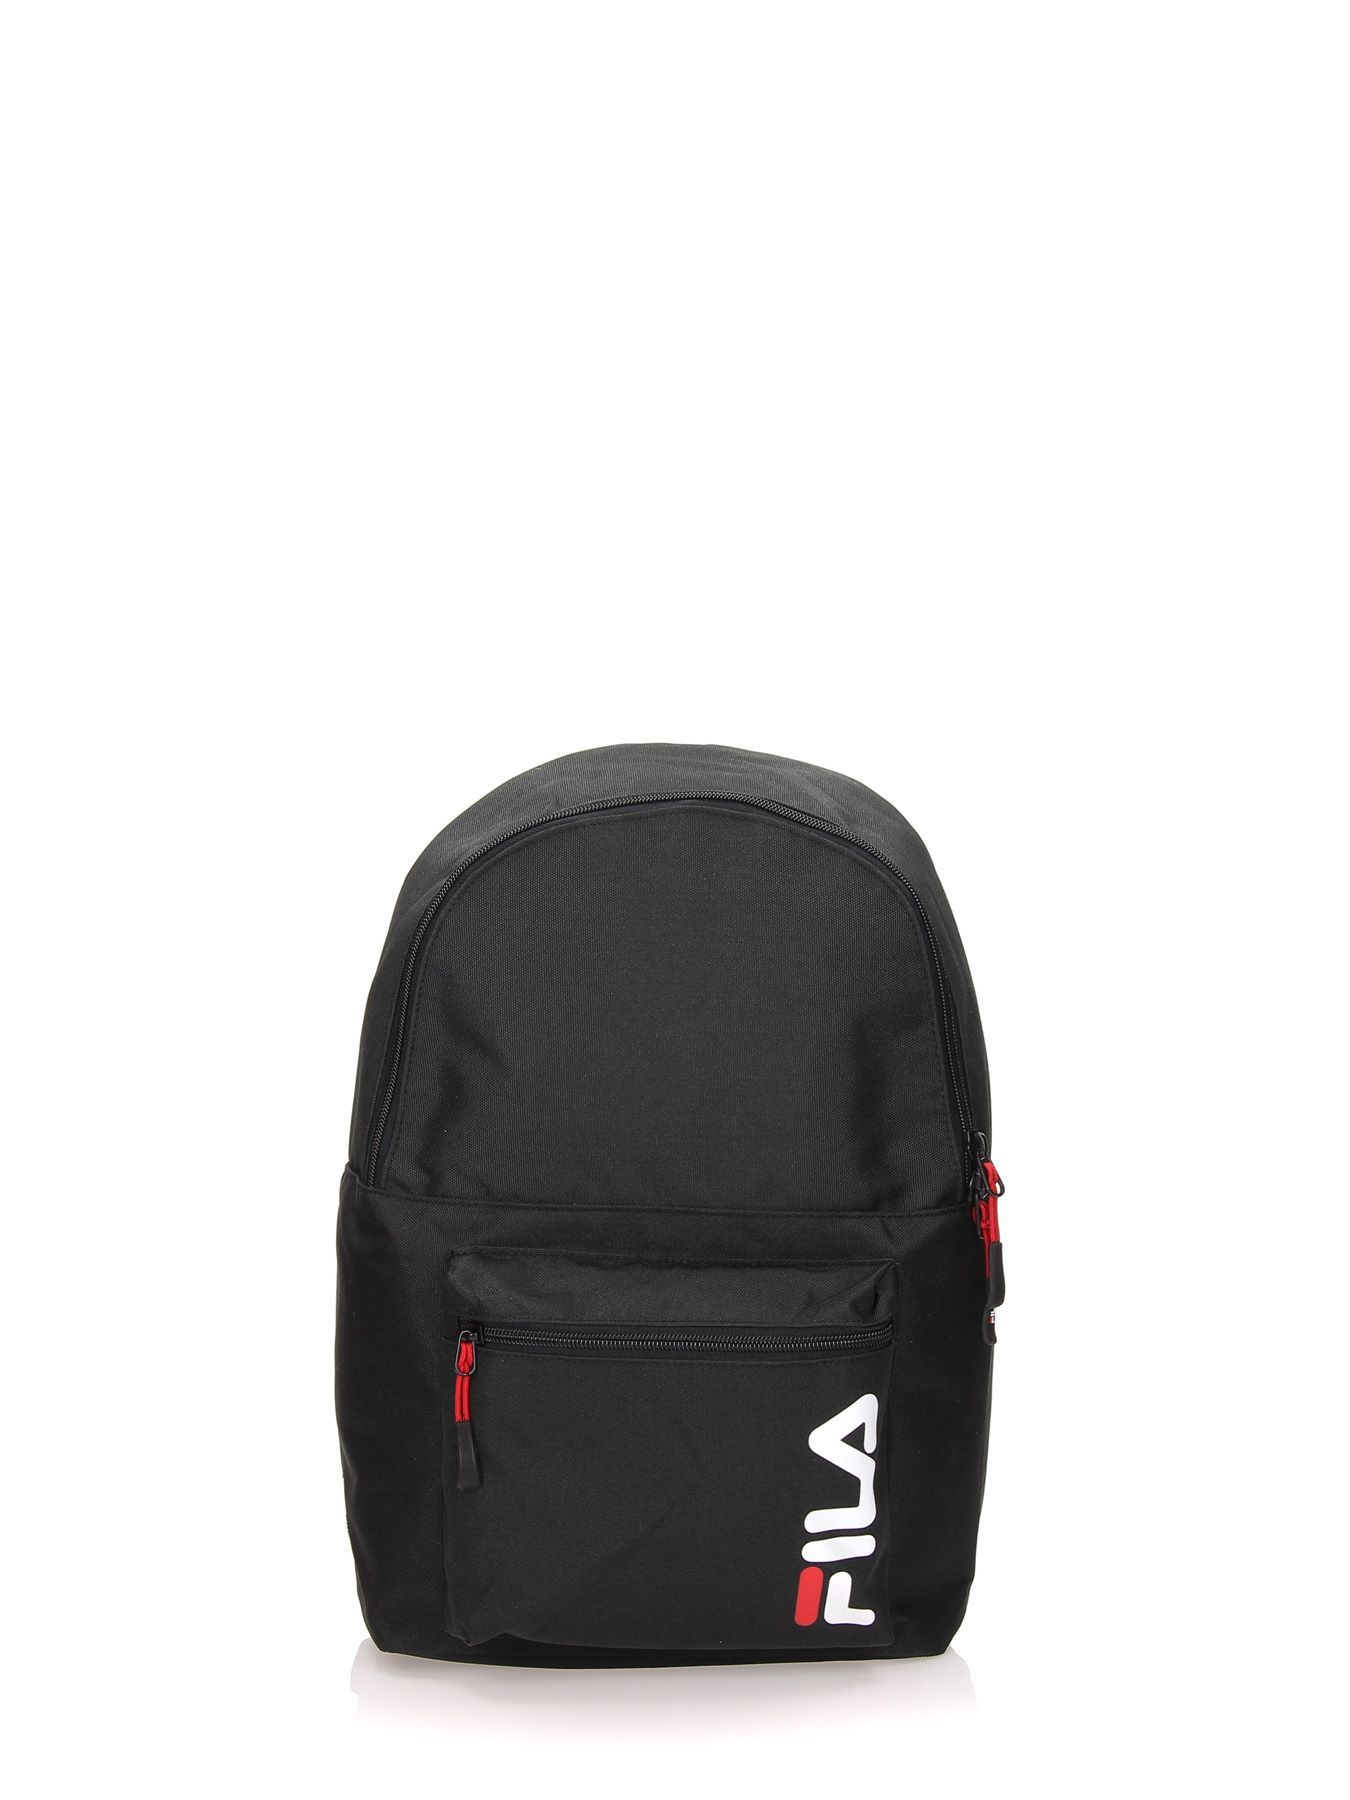 FILA BACKPACK S COOL.  fila  bags  lining  polyester  backpacks  lace 413651d33774d